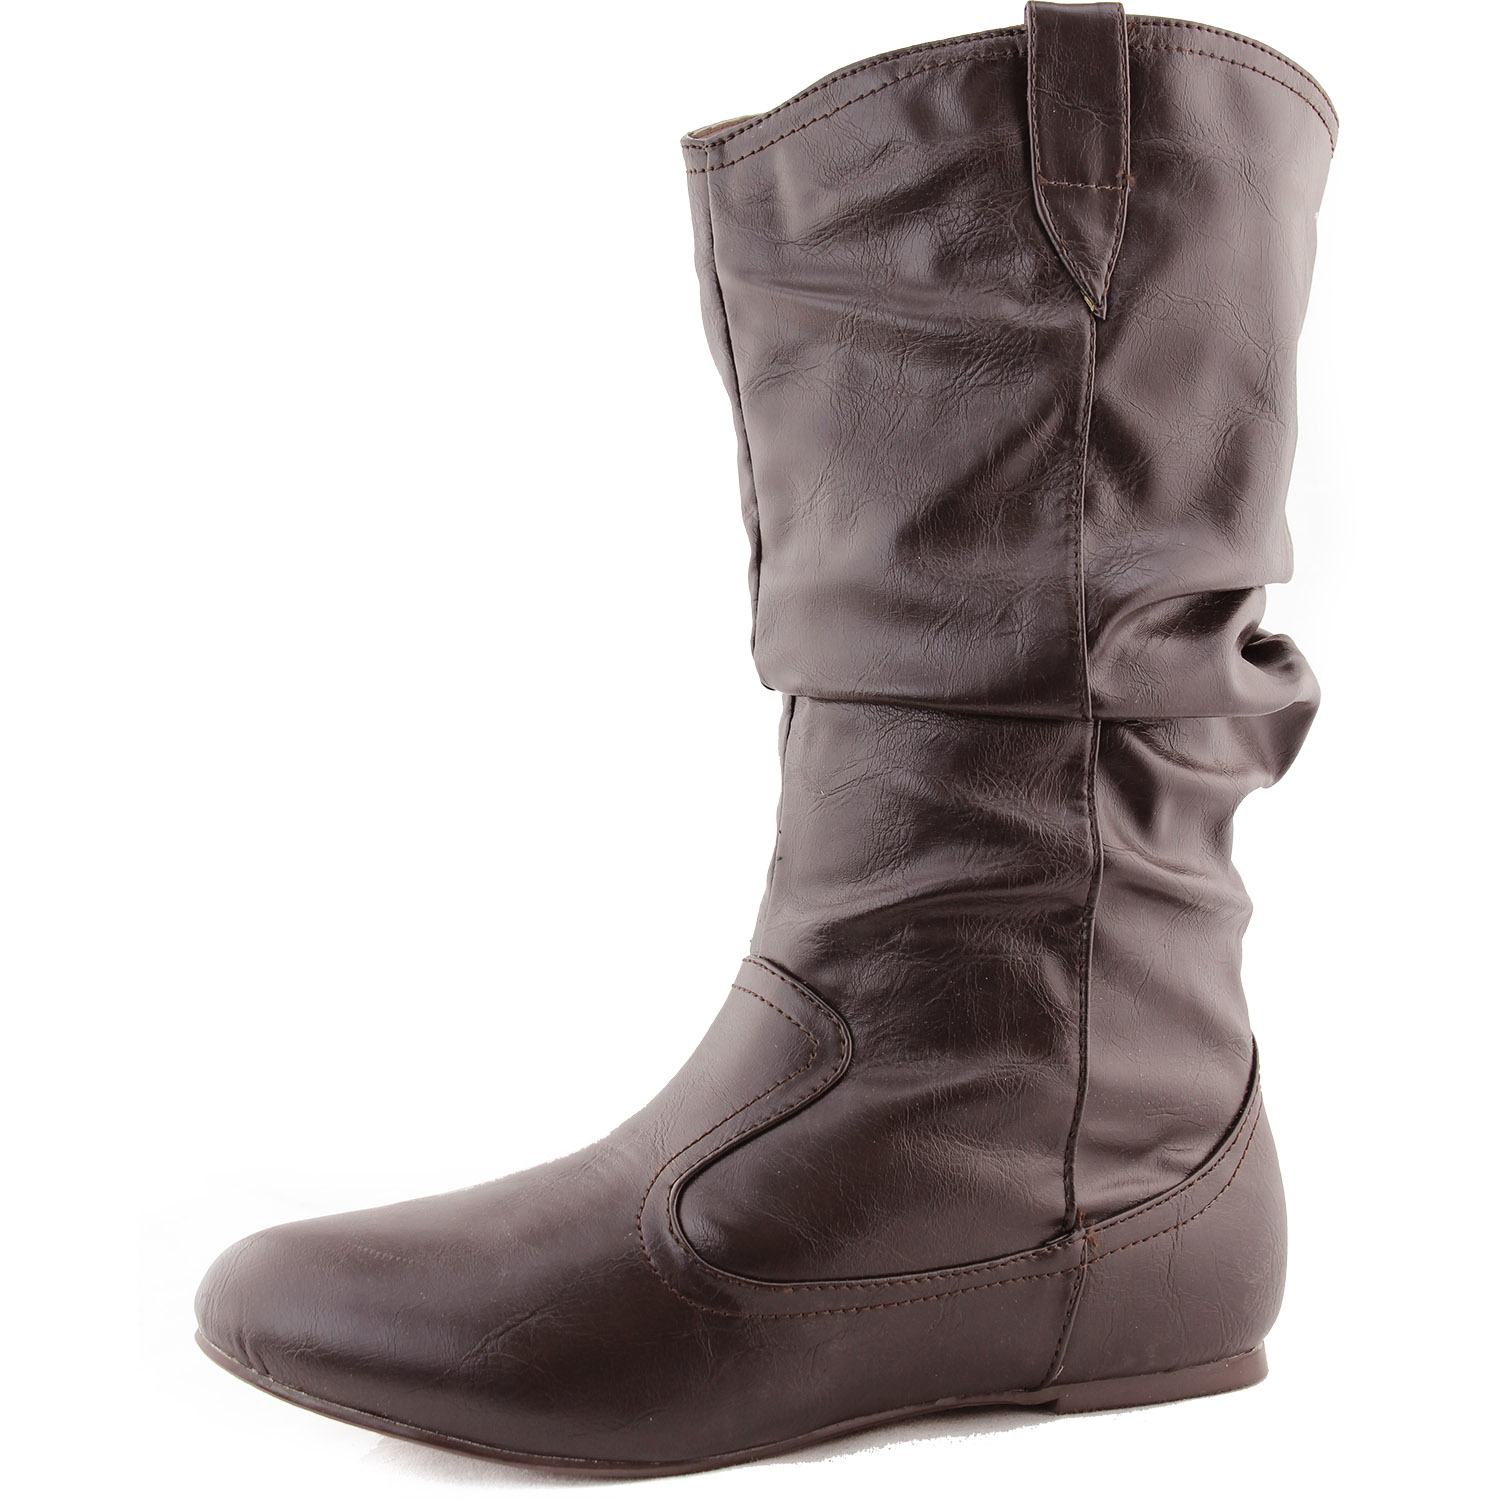 Top Moda Women's Top Moda Life-7 Mid Knee Casual Boots at Sears.com